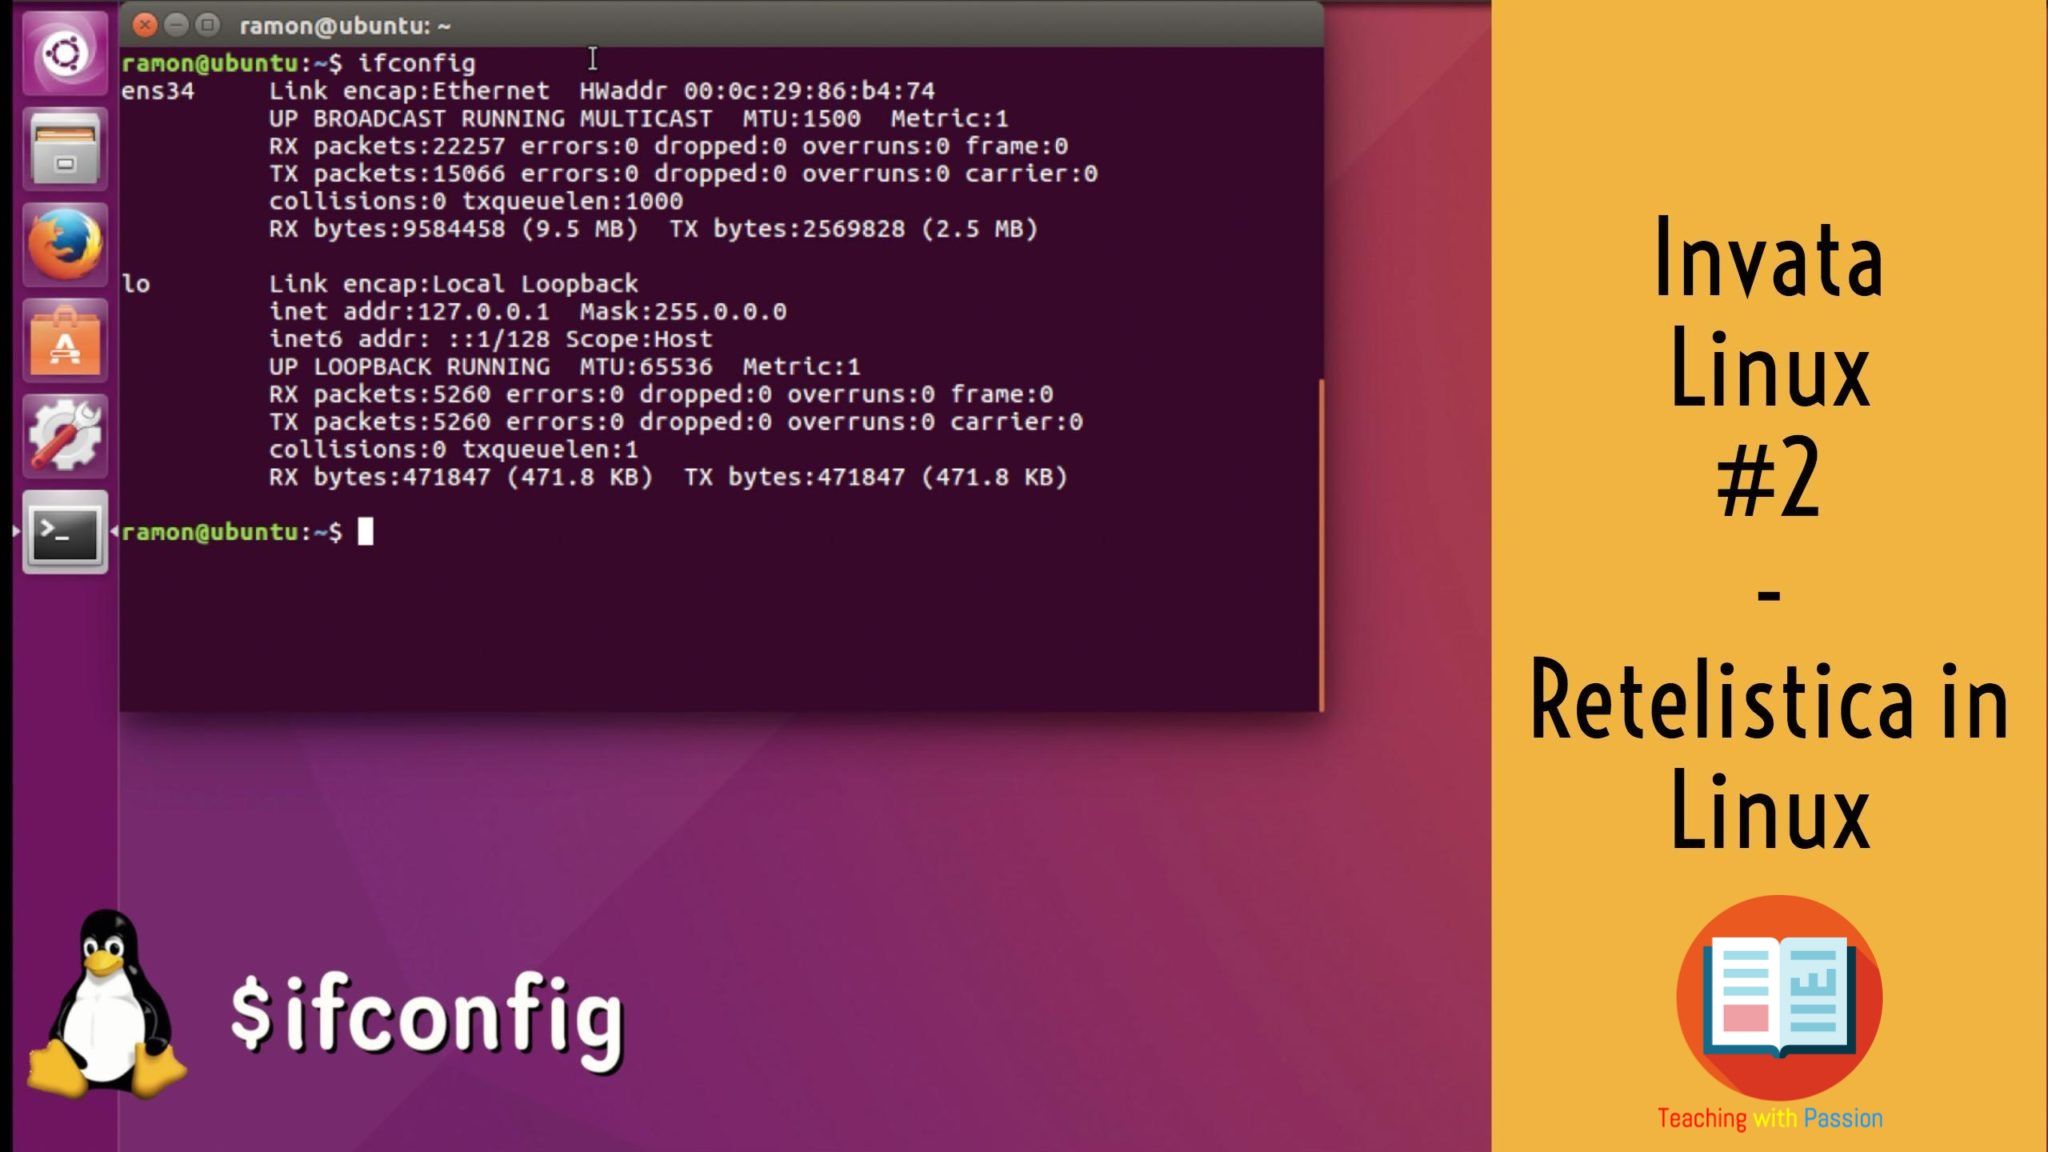 Retelistica in Linux | Setare adresa IP, Gateway si Troubleshooting | Invata Linux #2